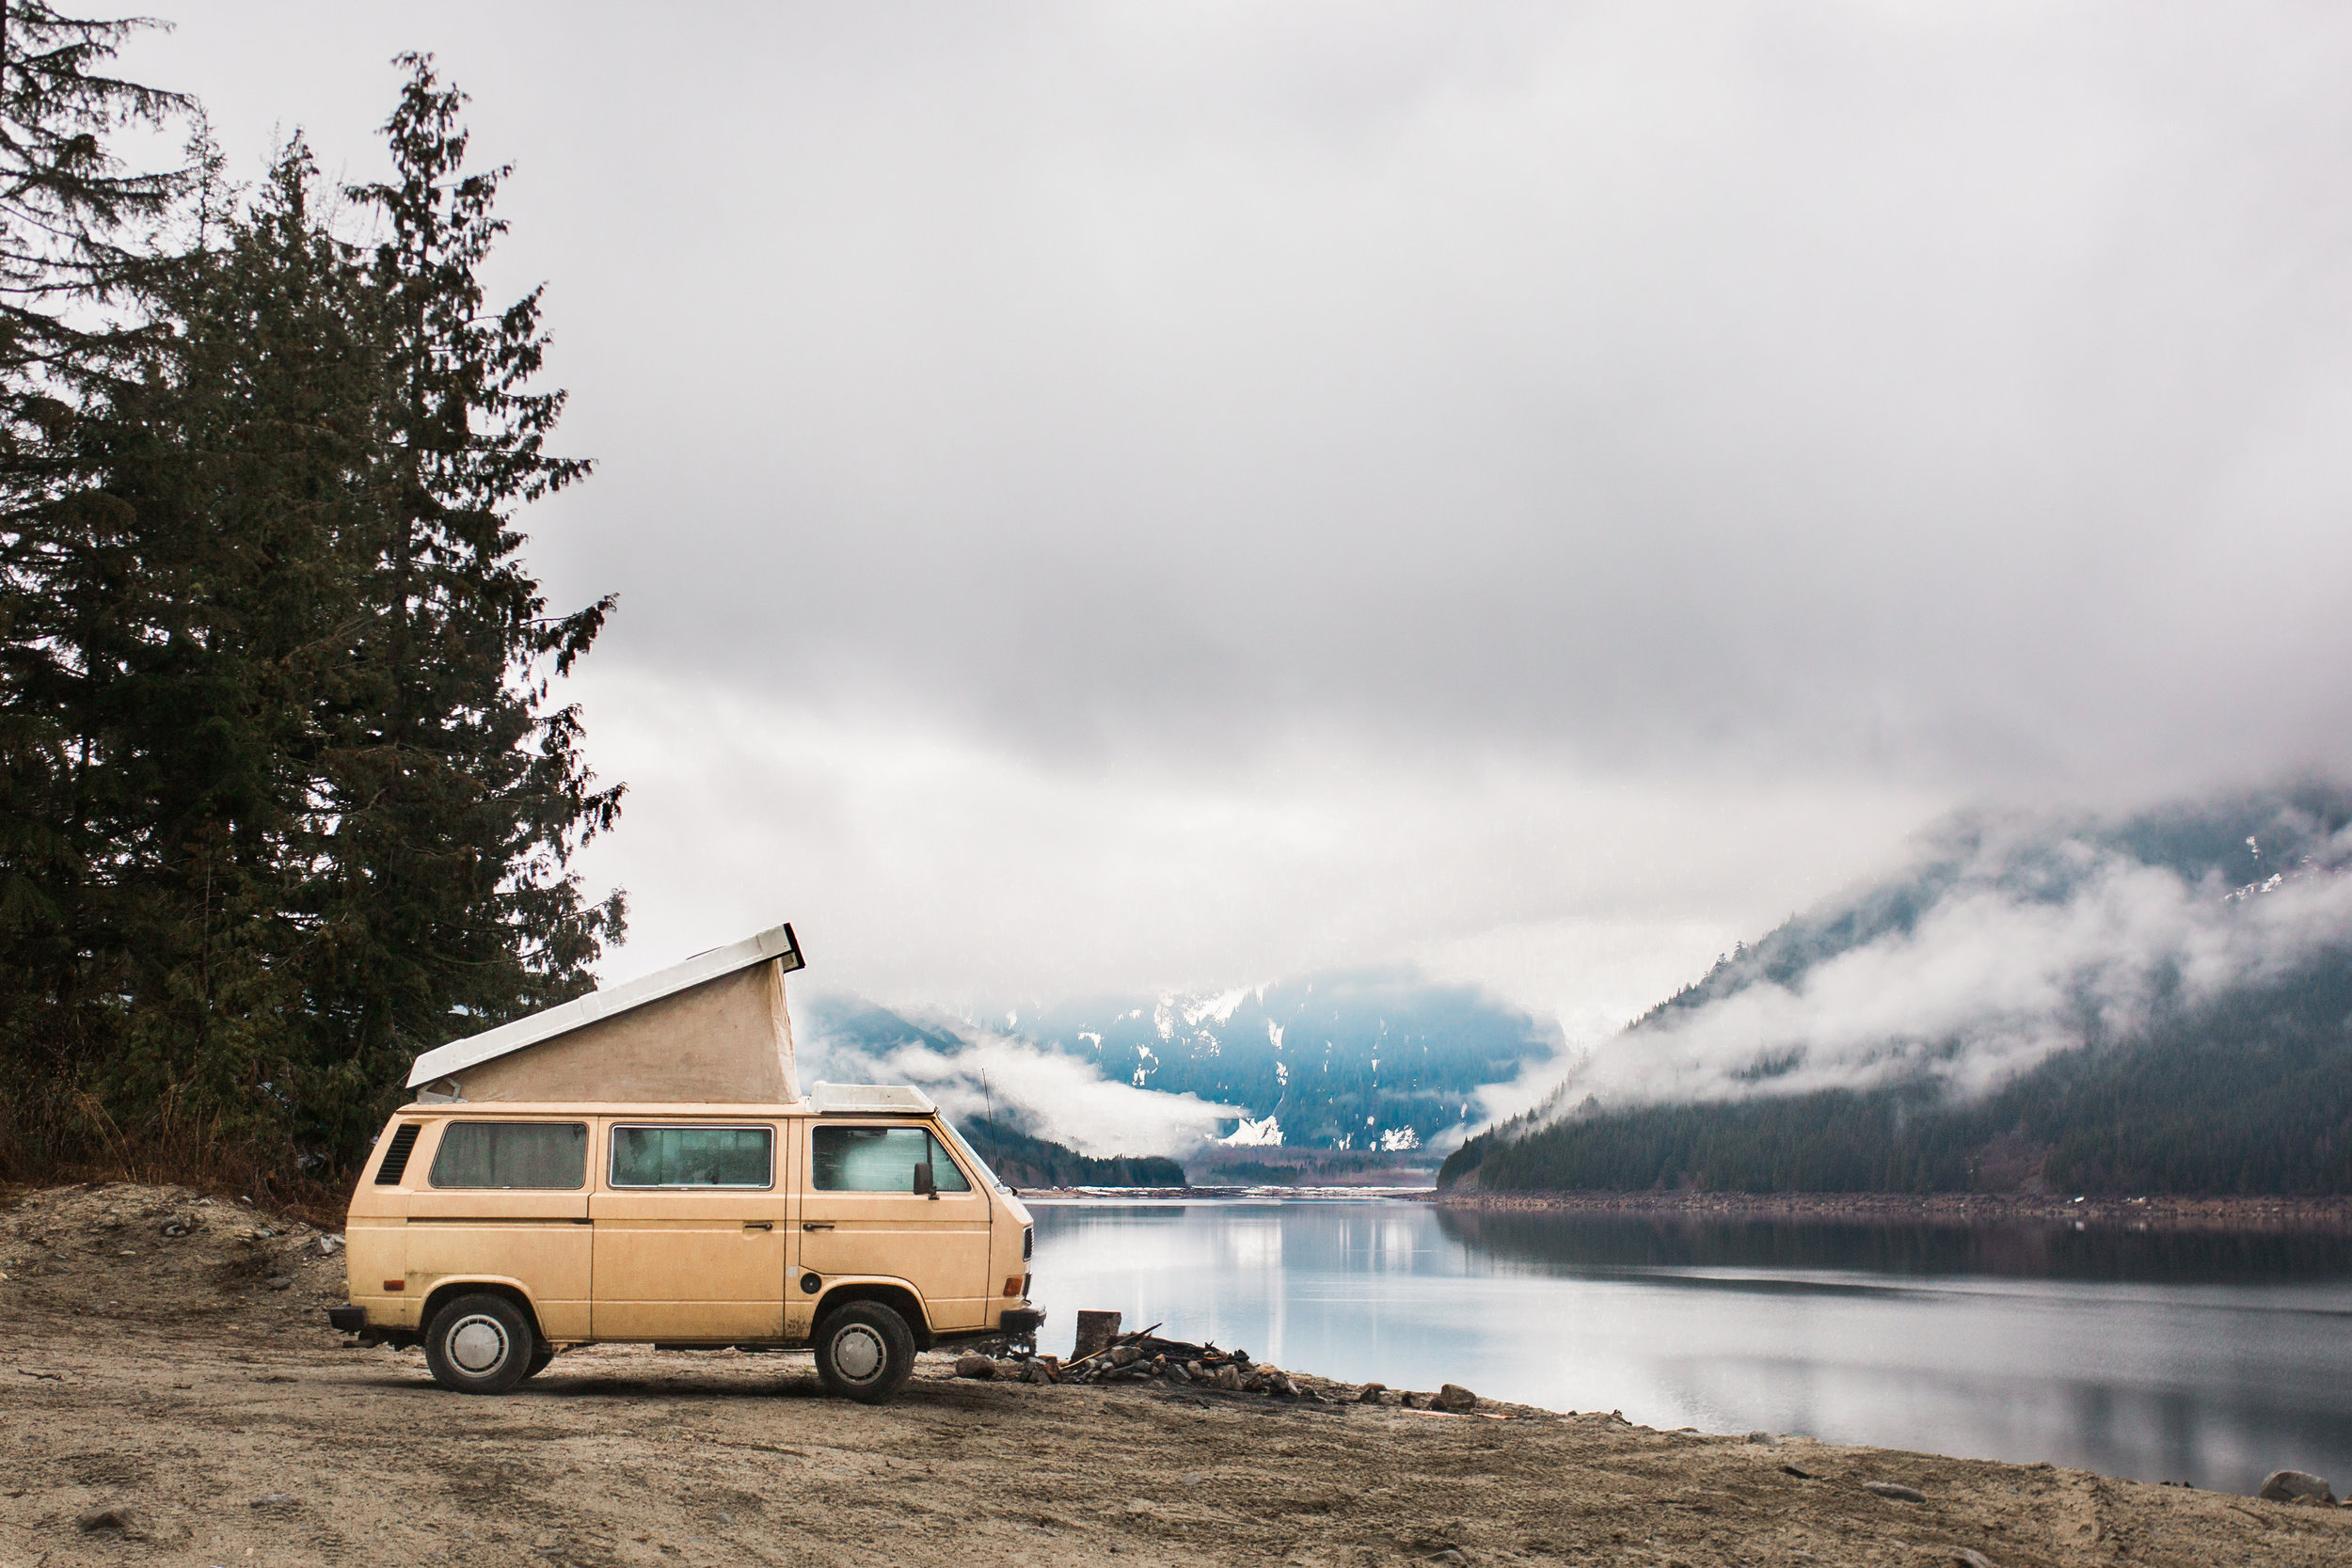 Most recent travel memory? - Read about my most recent favorite travel memory in Canada, driving around in this Westie.